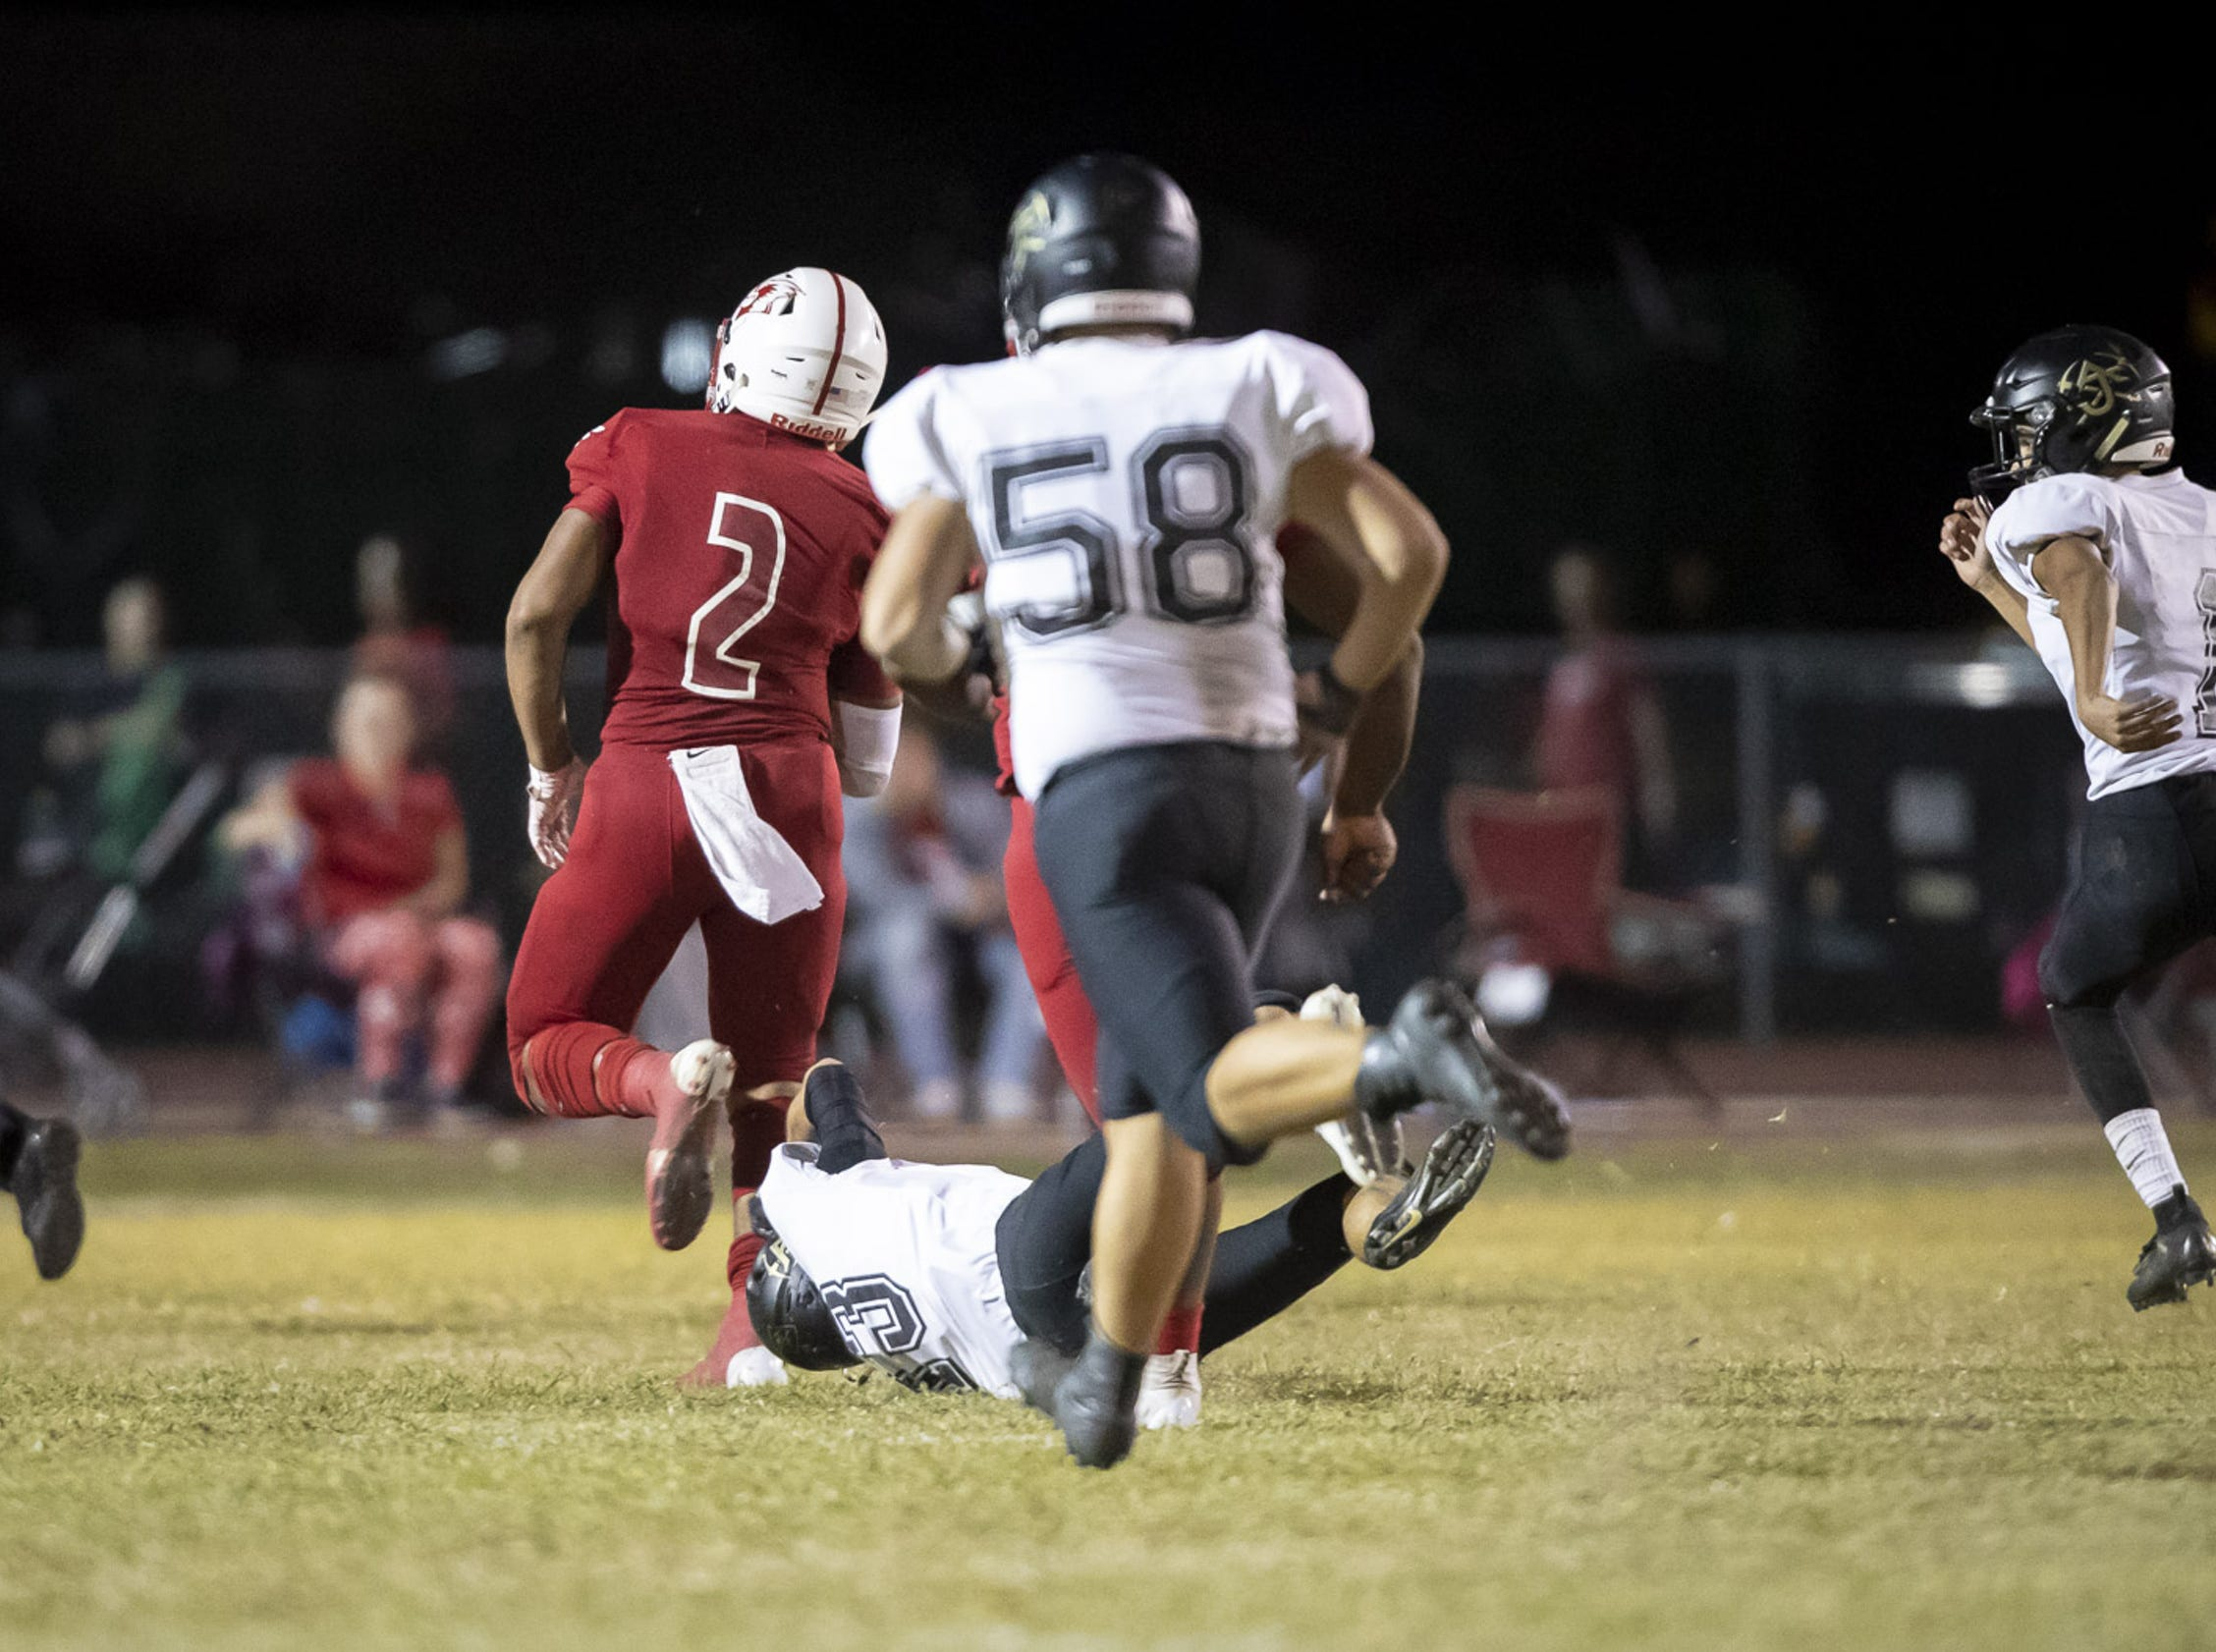 Junior running back Kevin Daniels (2) of the Glendale Cardinals runs the ball in the end-zone for a touchdown against the Apache Junction Prospectors at Glendale High School on Friday, October 19, 2018 in Glendale, Arizona. #azhsfb